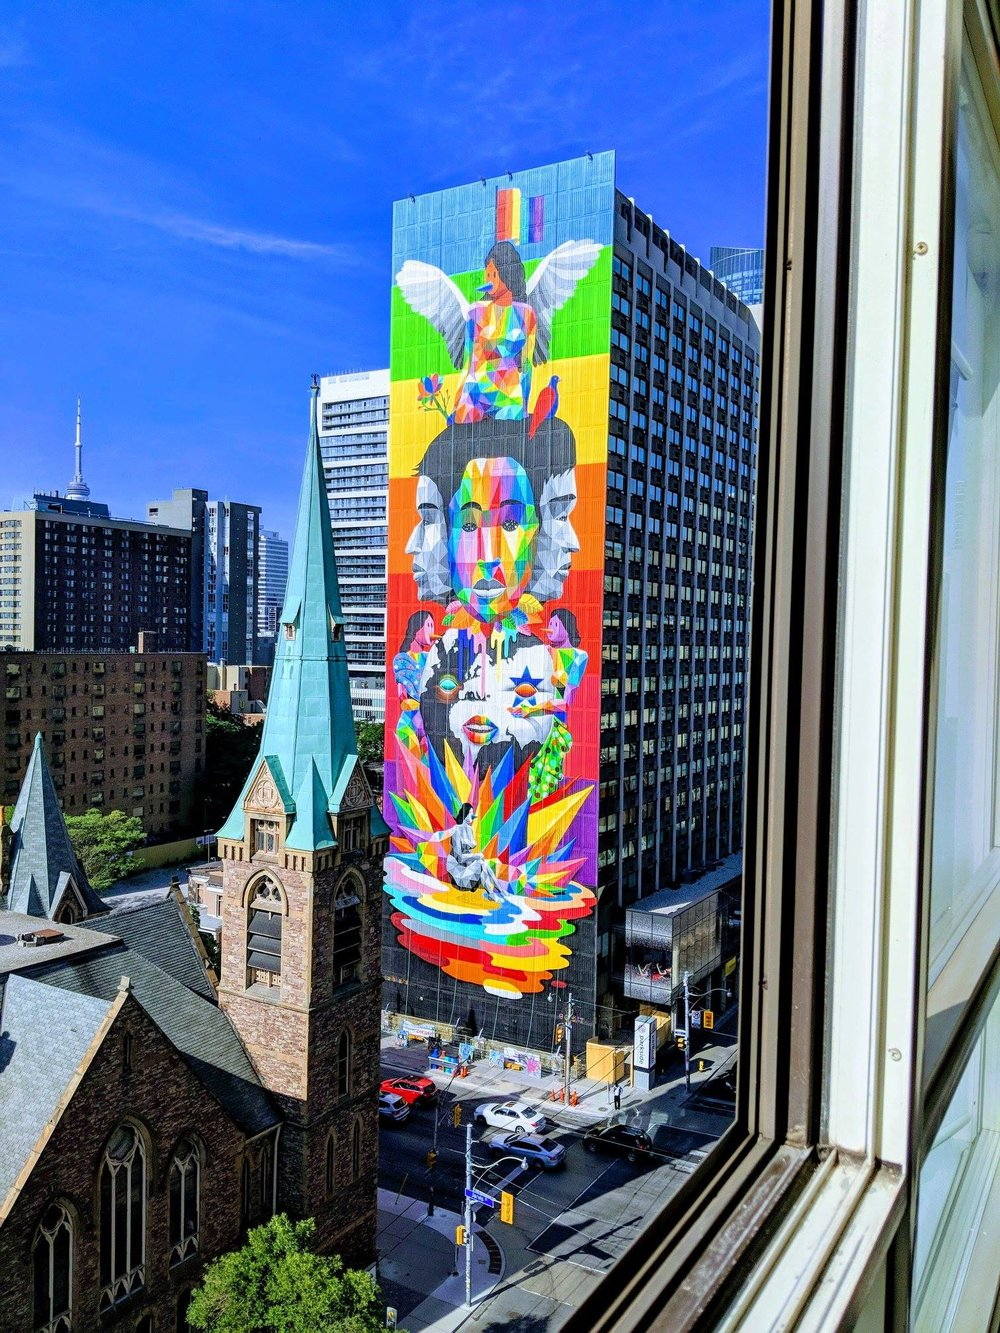 - Equilibrium MuralStephanie Bellefleur worked as an Art Administrator / Painter under award winning public art organization, Steps Initiative. This 23 story Mural is located at 111 Carlton, Parkside Student Residence.